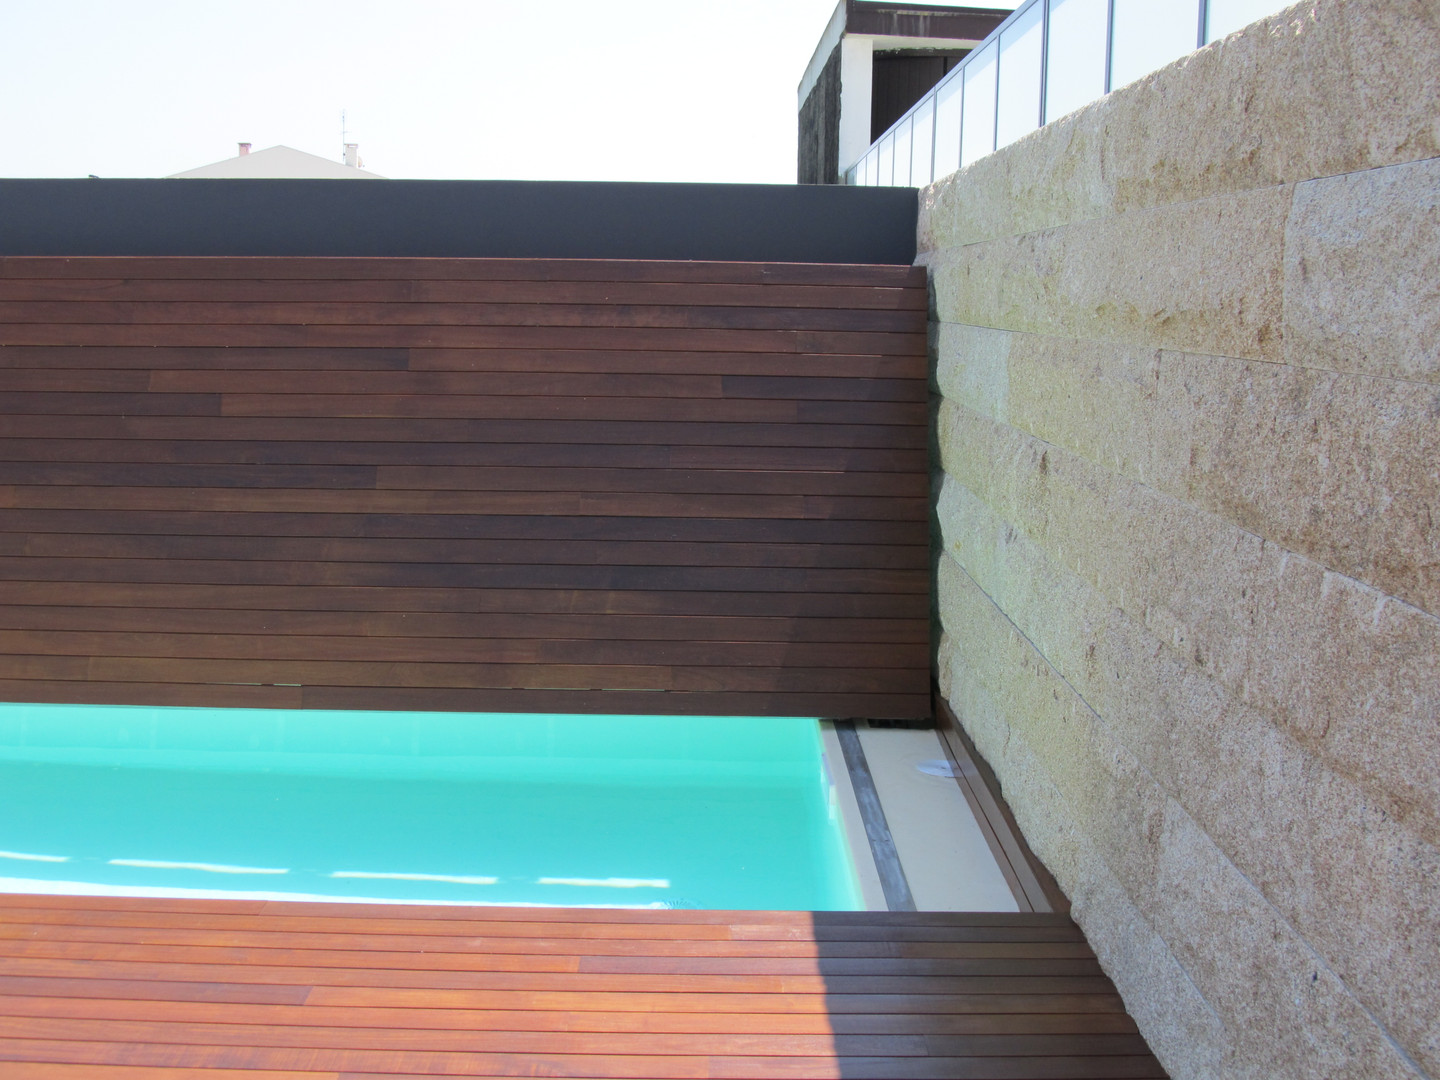 Vertical Pool Cover - ABER MOVE (1).JPG